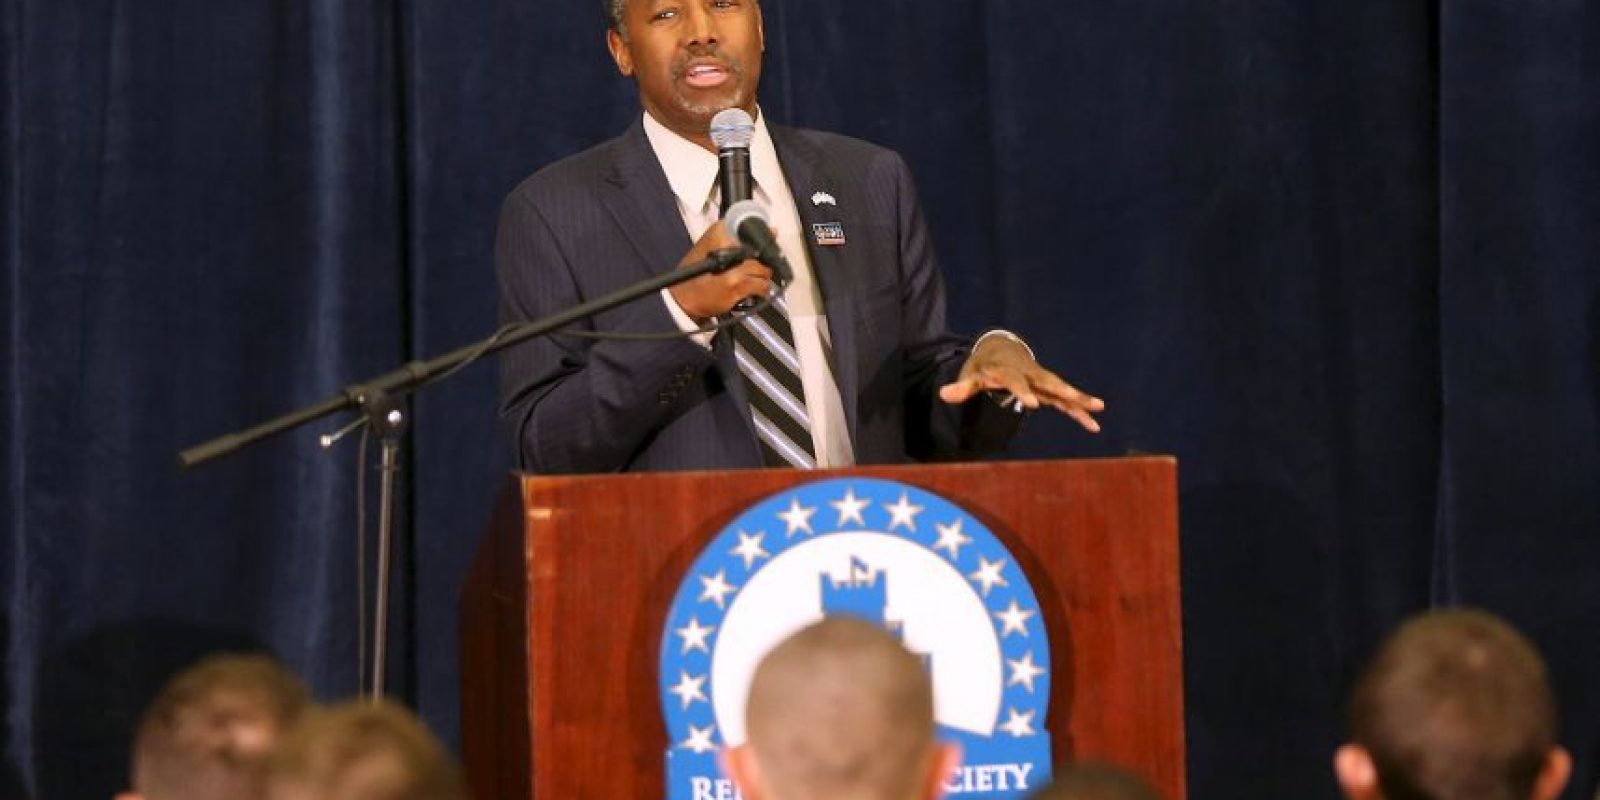 Ben Carson. No ha logrado salir de las últimas posiciones. Foto: Getty Images